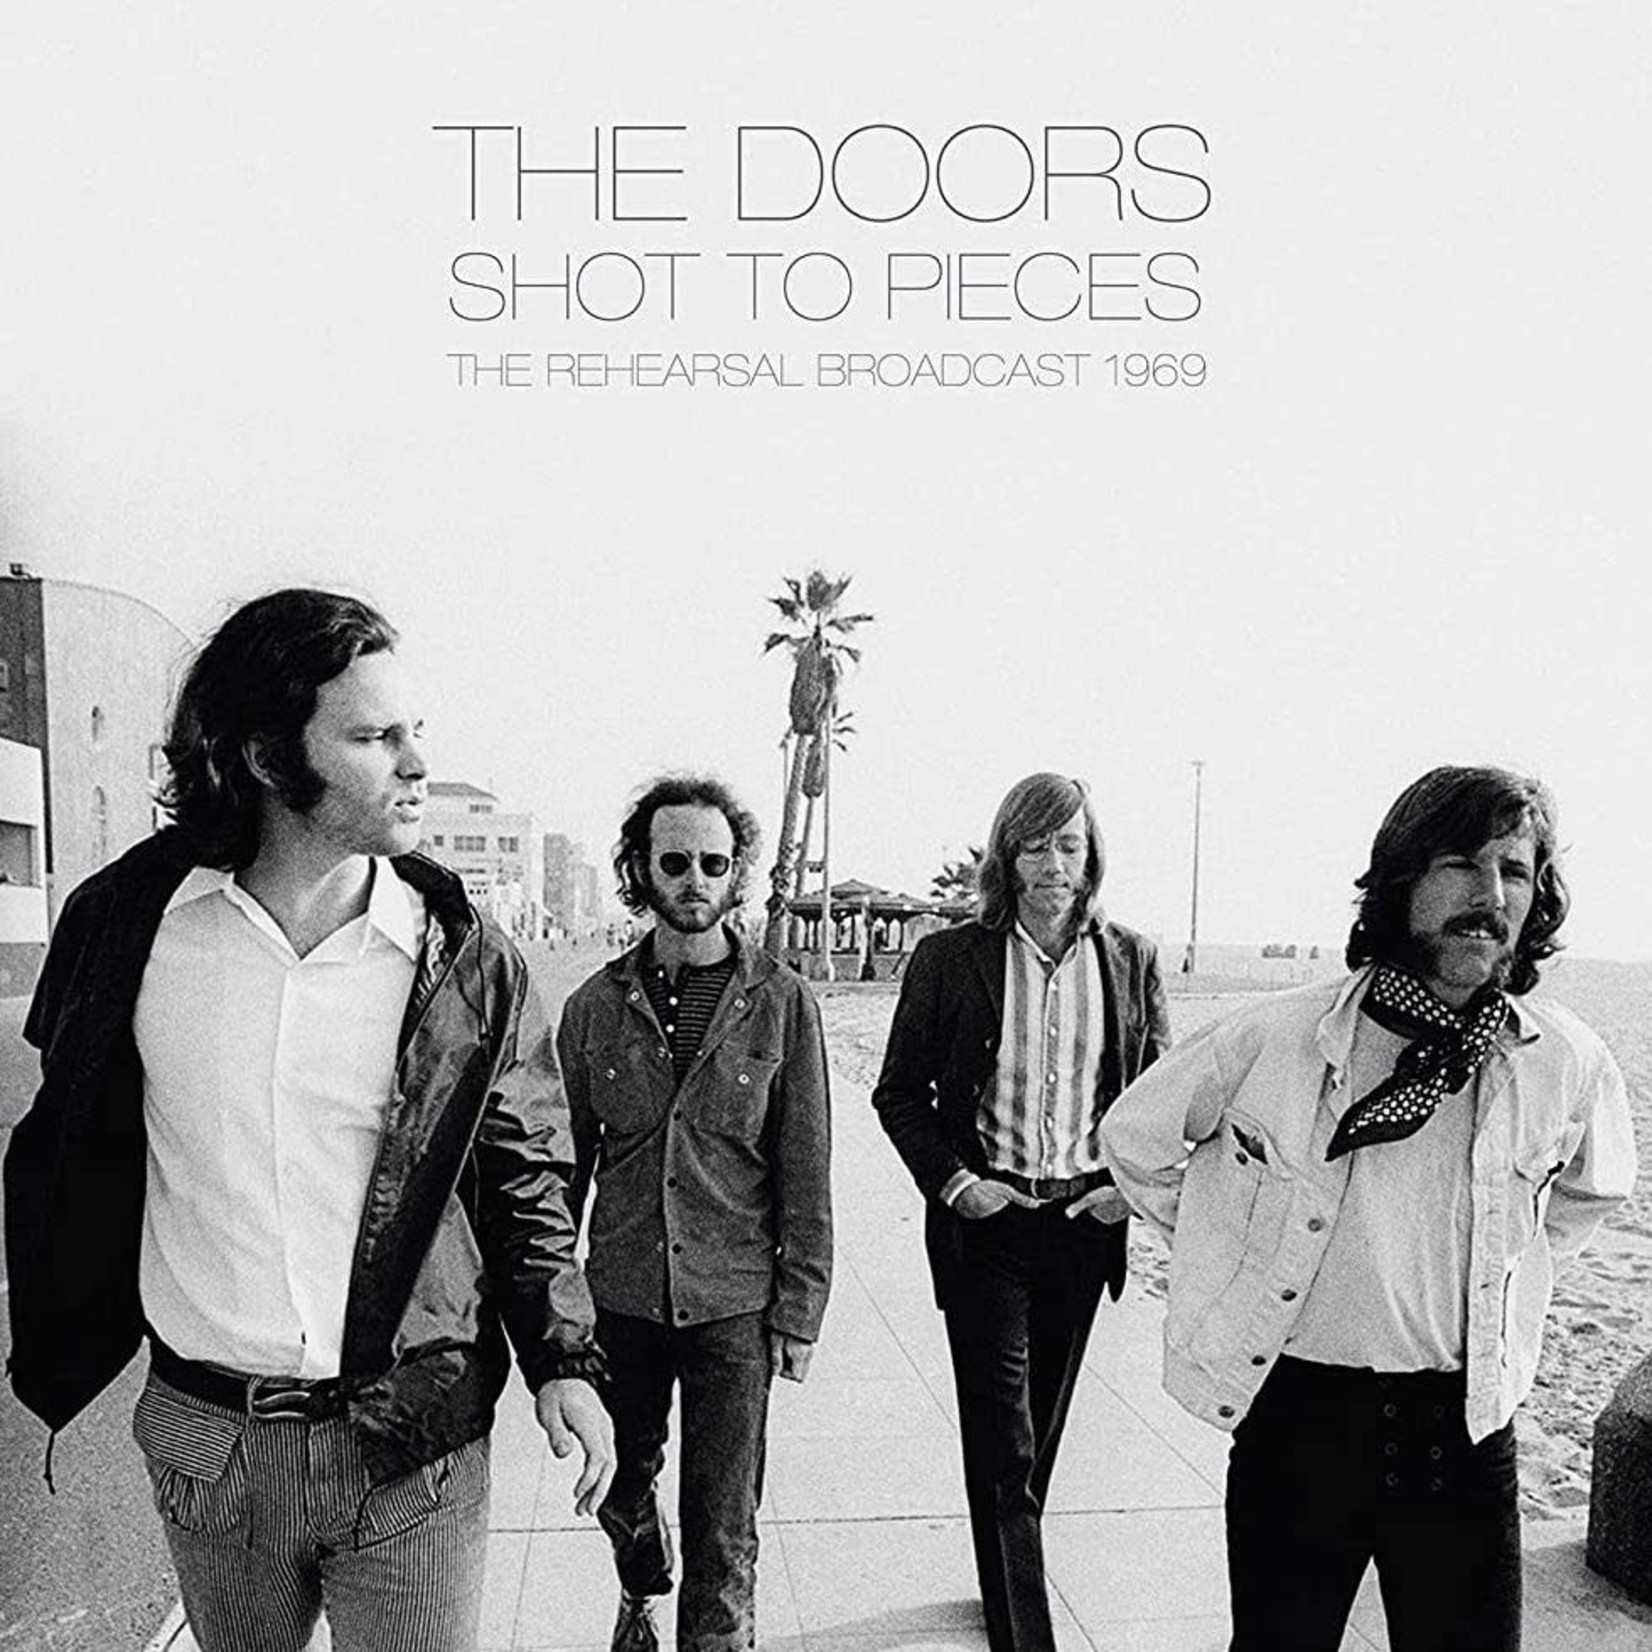 Vinyl The Doors - Shot To Pieces (1969 Rehearsal Broadcast)